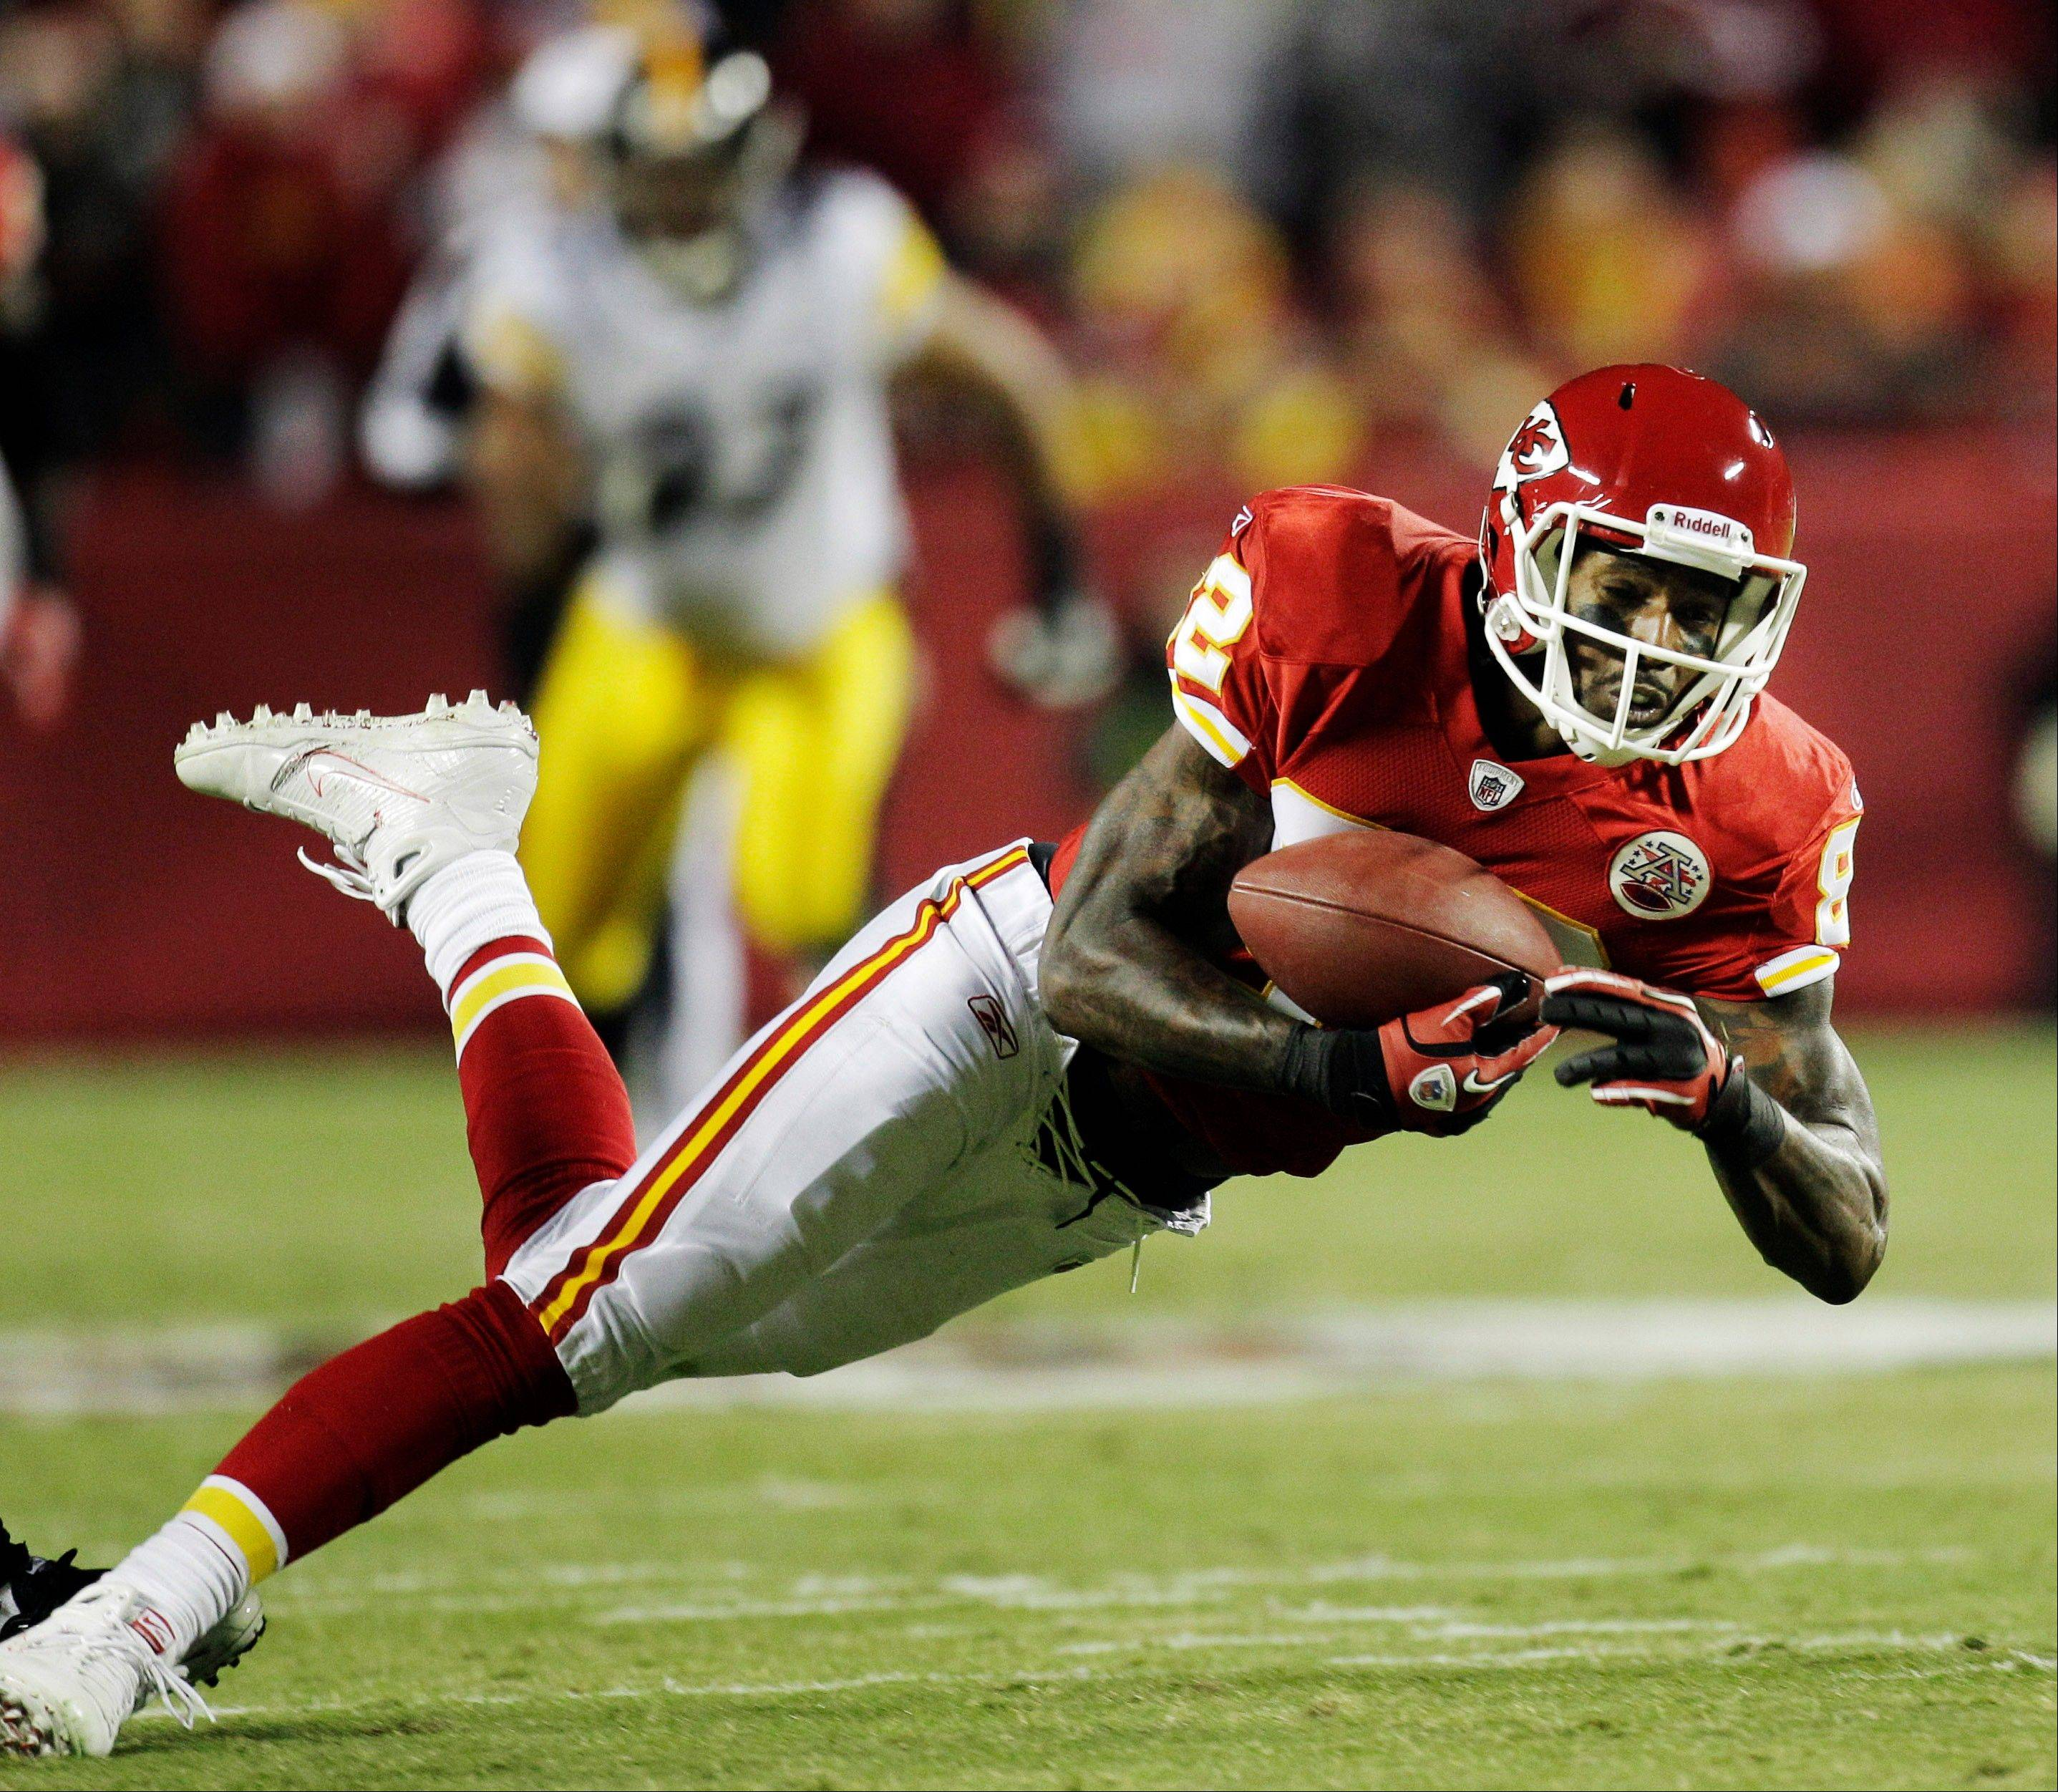 With the Kansas City offense struggling mightily, it may be time to trade Dwayne Bowe.